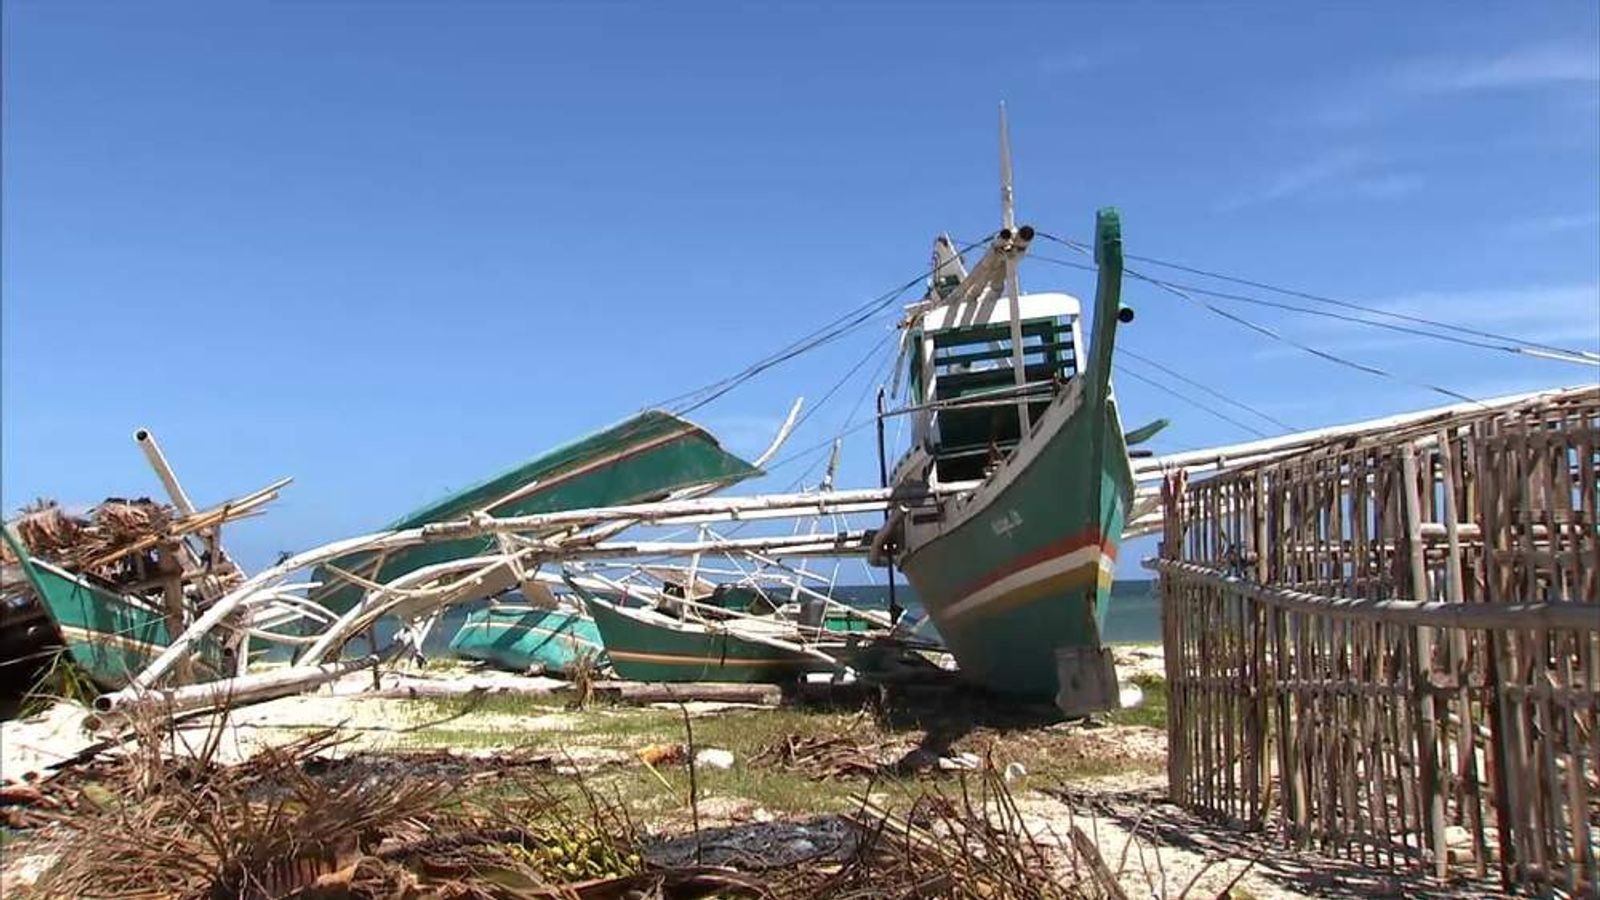 A damaged fishing boat